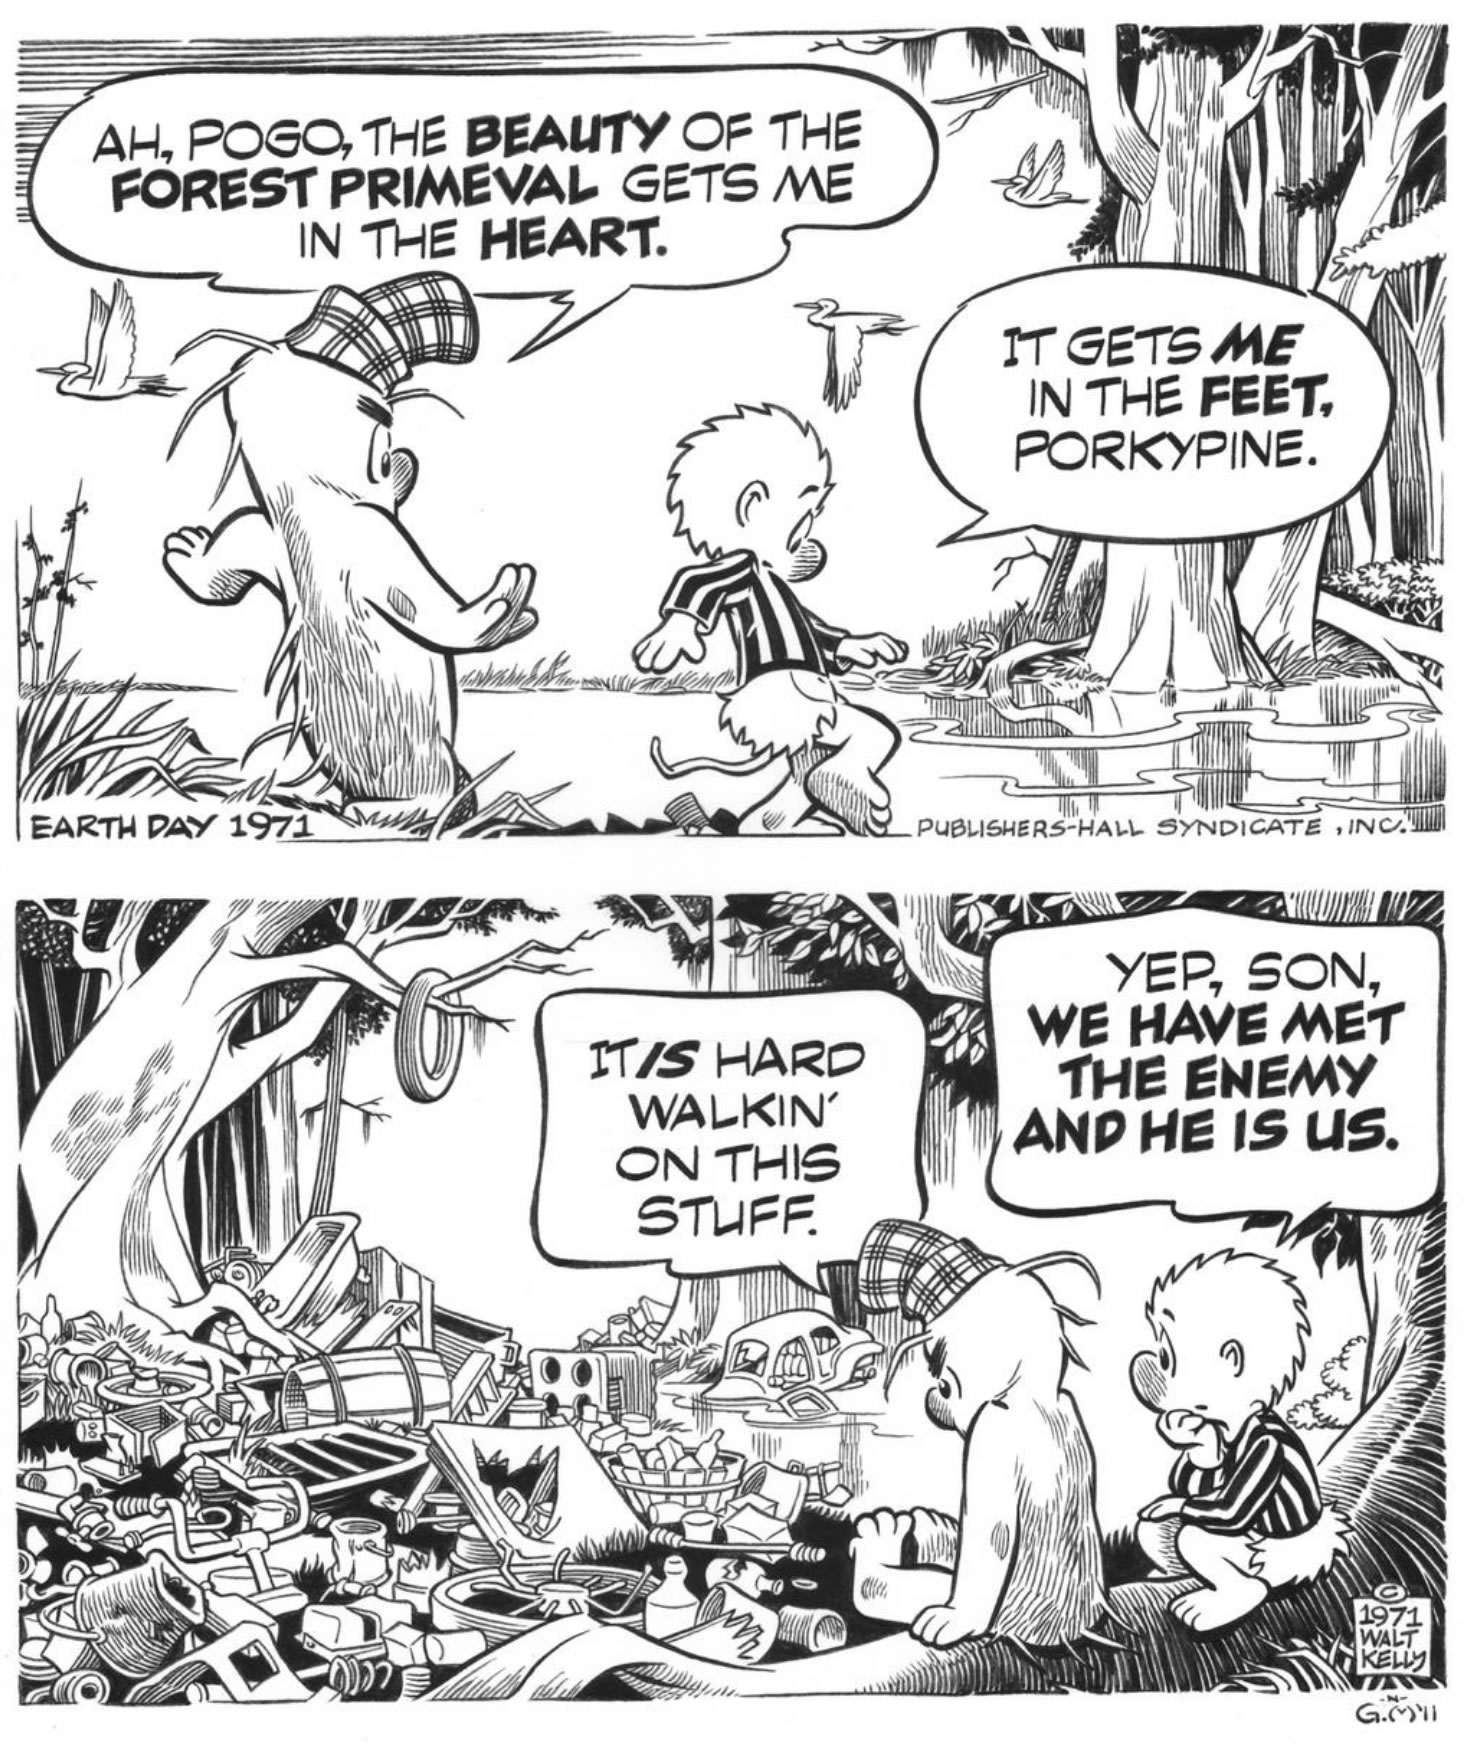 Pogo by Walt Kelly, from Earth Day 1971